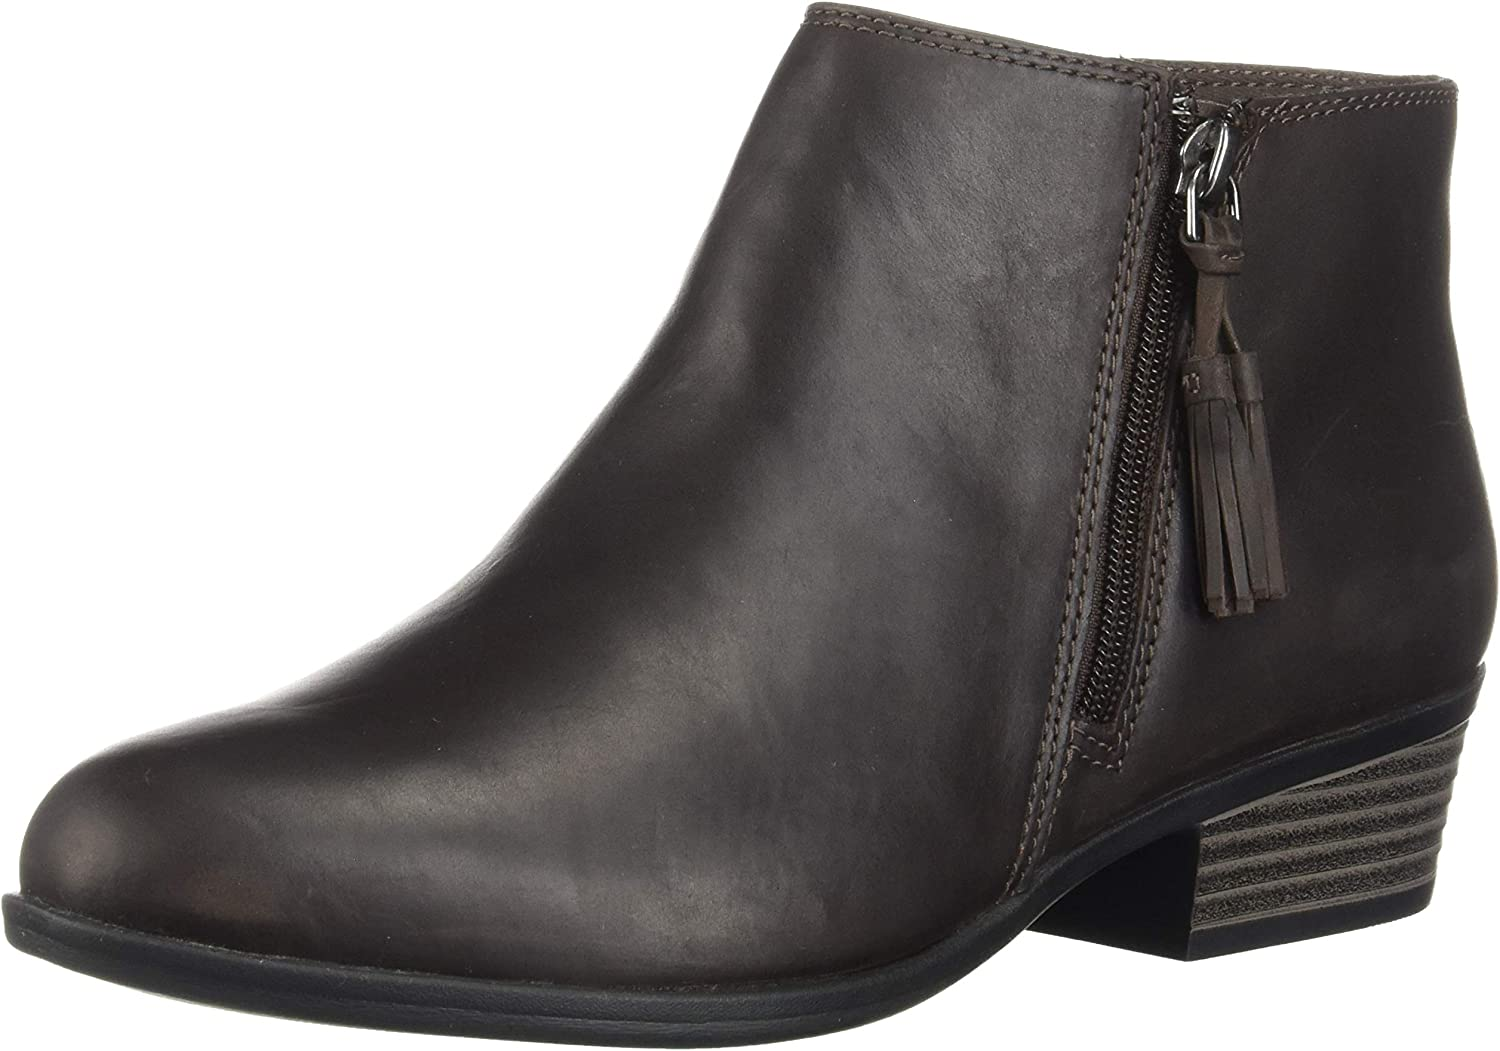 Clarks Women's Addiy Terri Fashion Boot